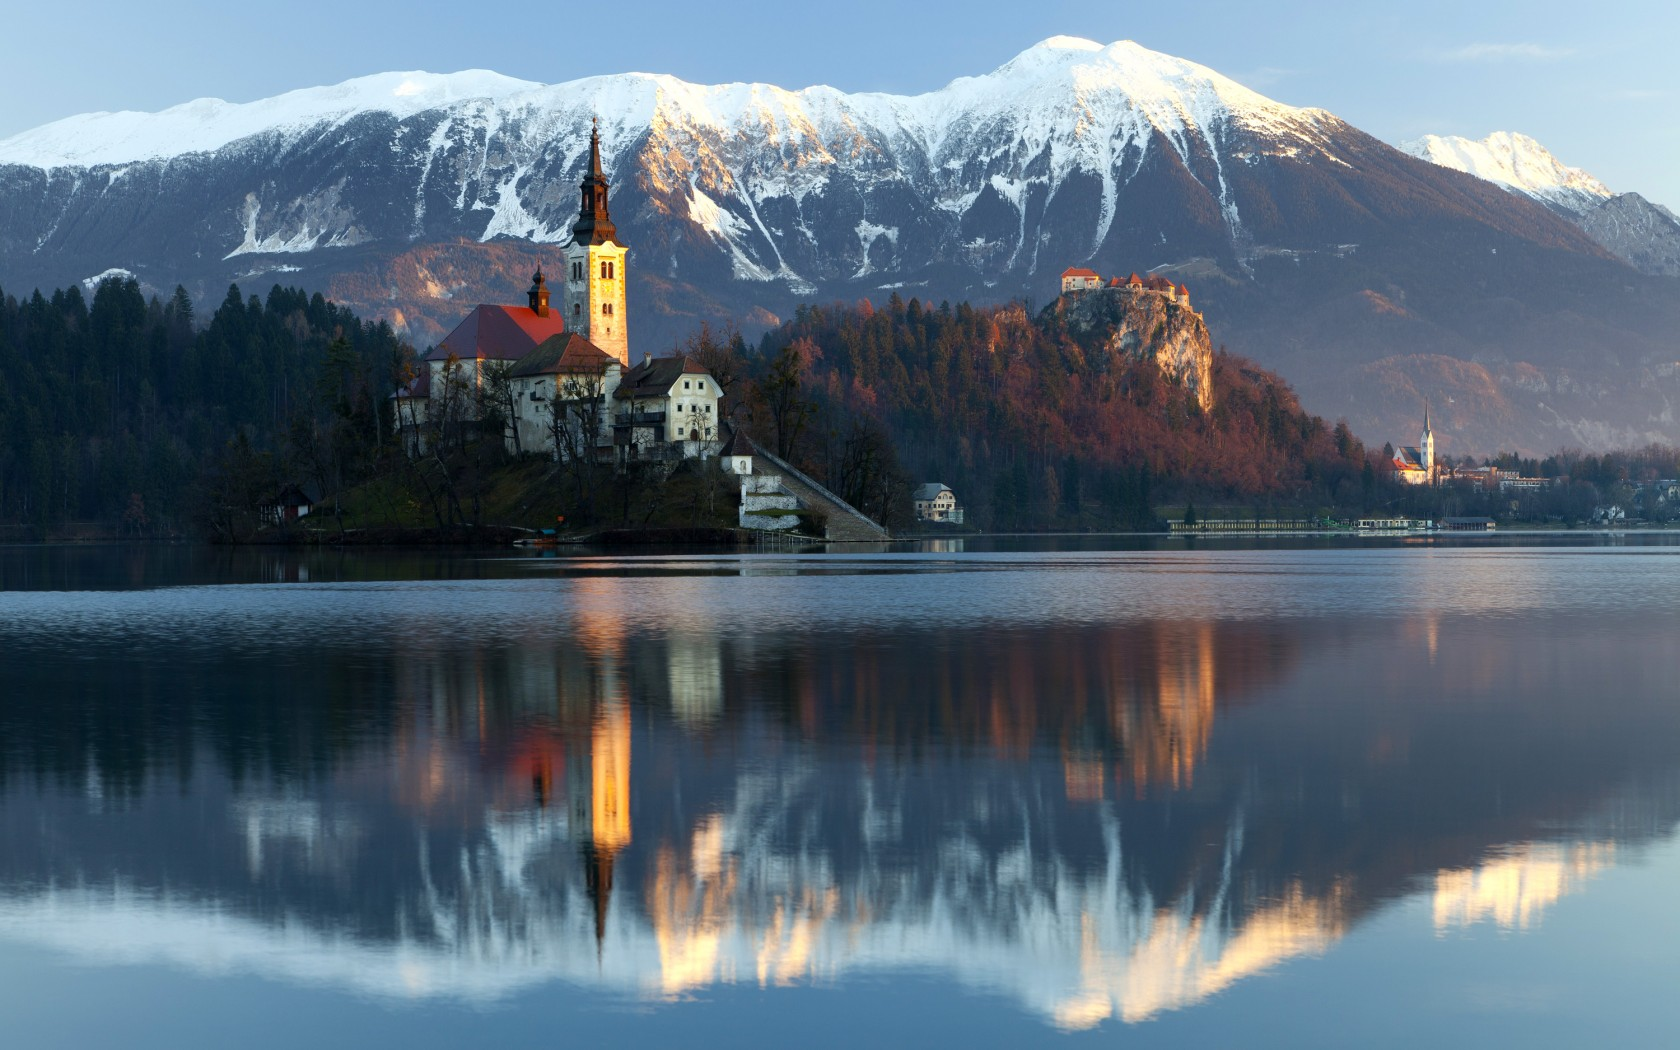 2-lake-bled-slovenia-famous-image-of-church-in-lake-snowy-peaks-behind-1132-197-1680x1050